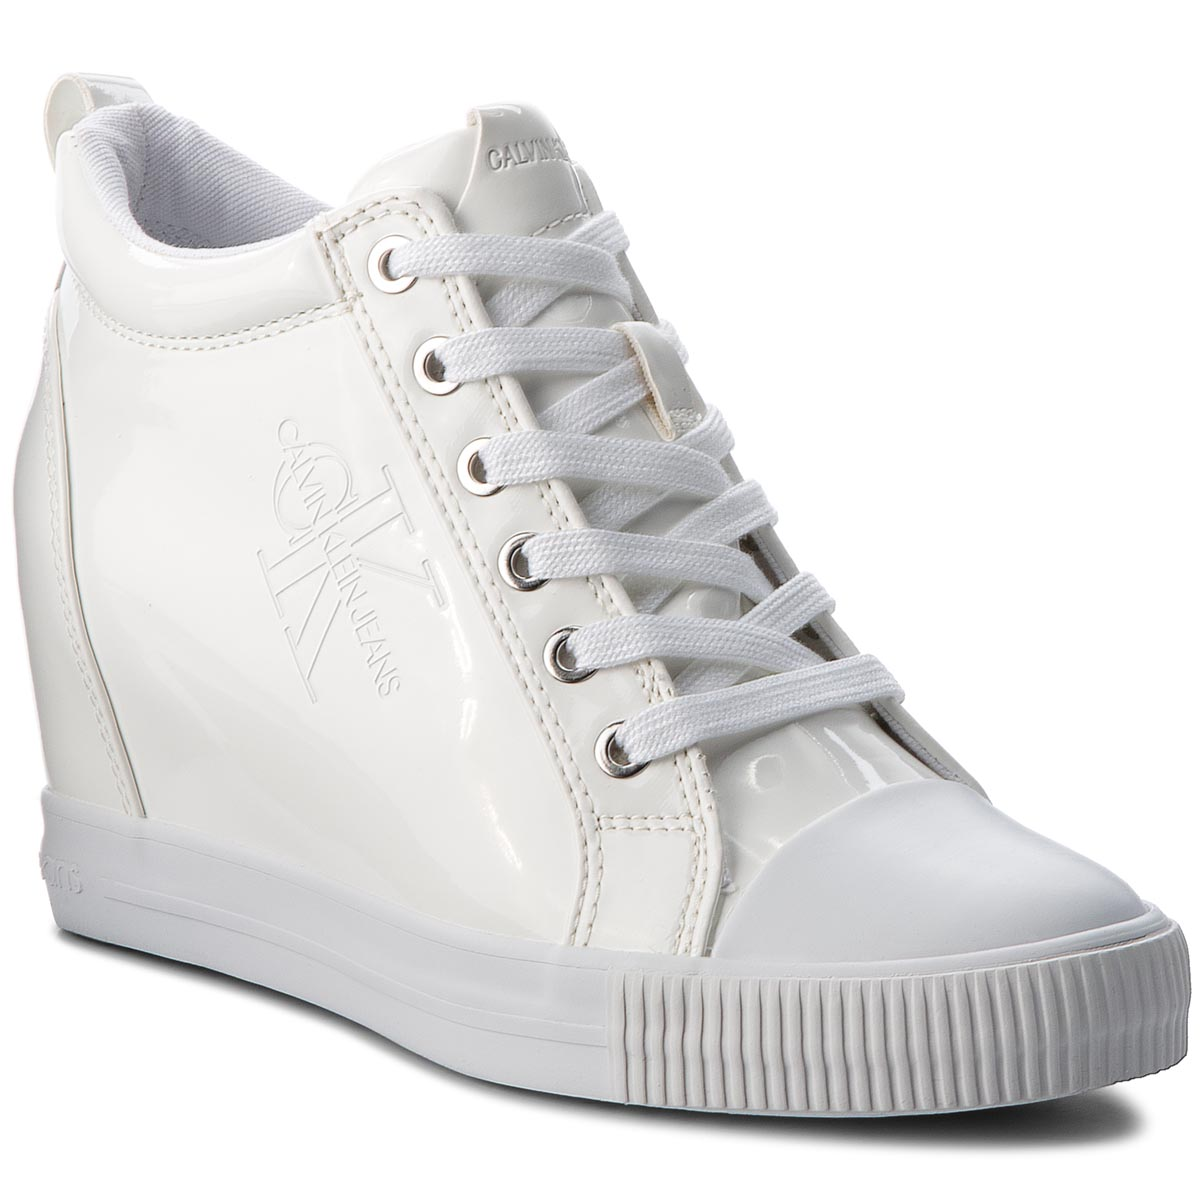 Sneakersy CALVIN KLEIN JEANS - Ritzy RE9799 White